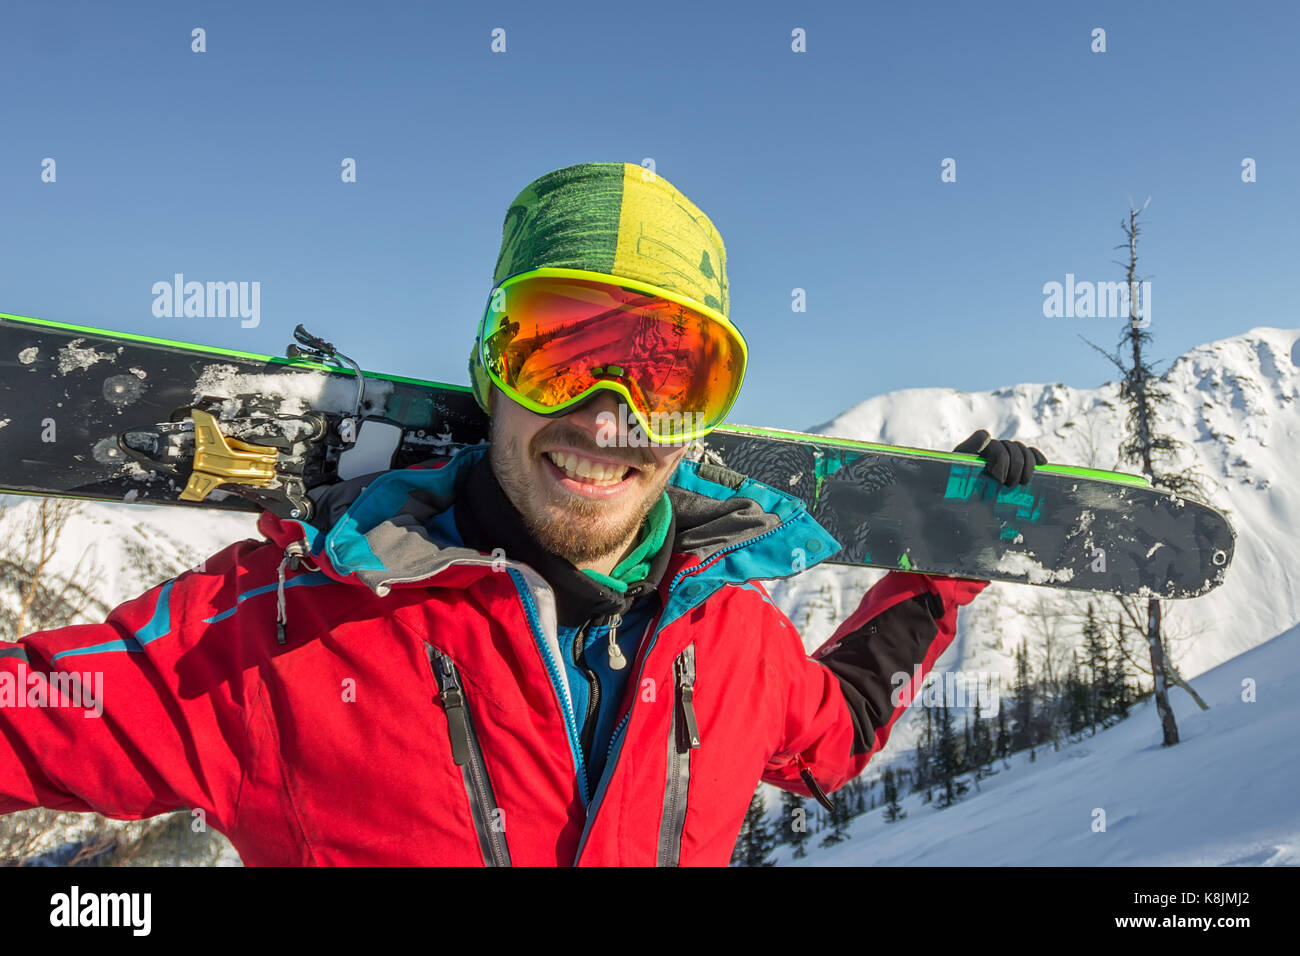 Portrait young man ski goggles holding ski in the mountains. - Stock Image